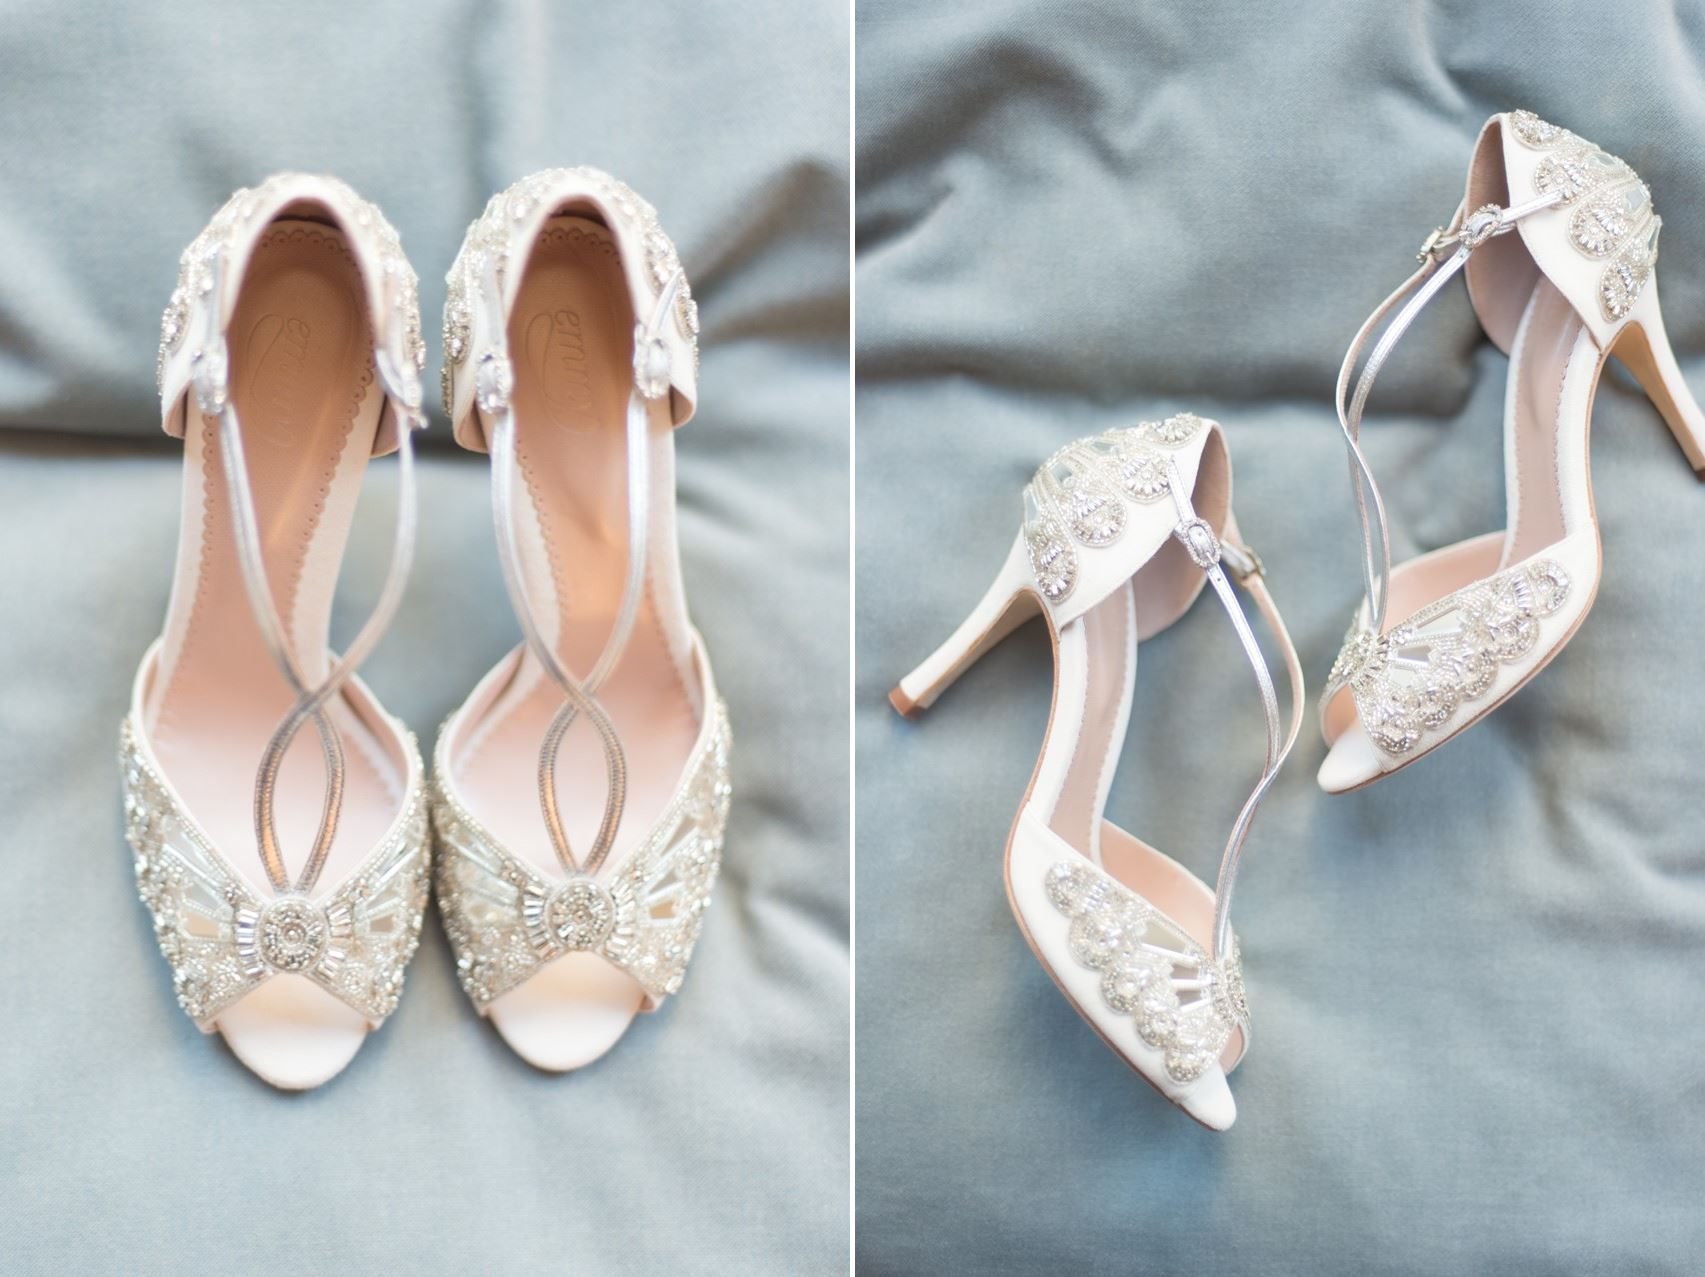 The Exquisite New Bridal Shoes Collection from Emmy London | Bridal ...